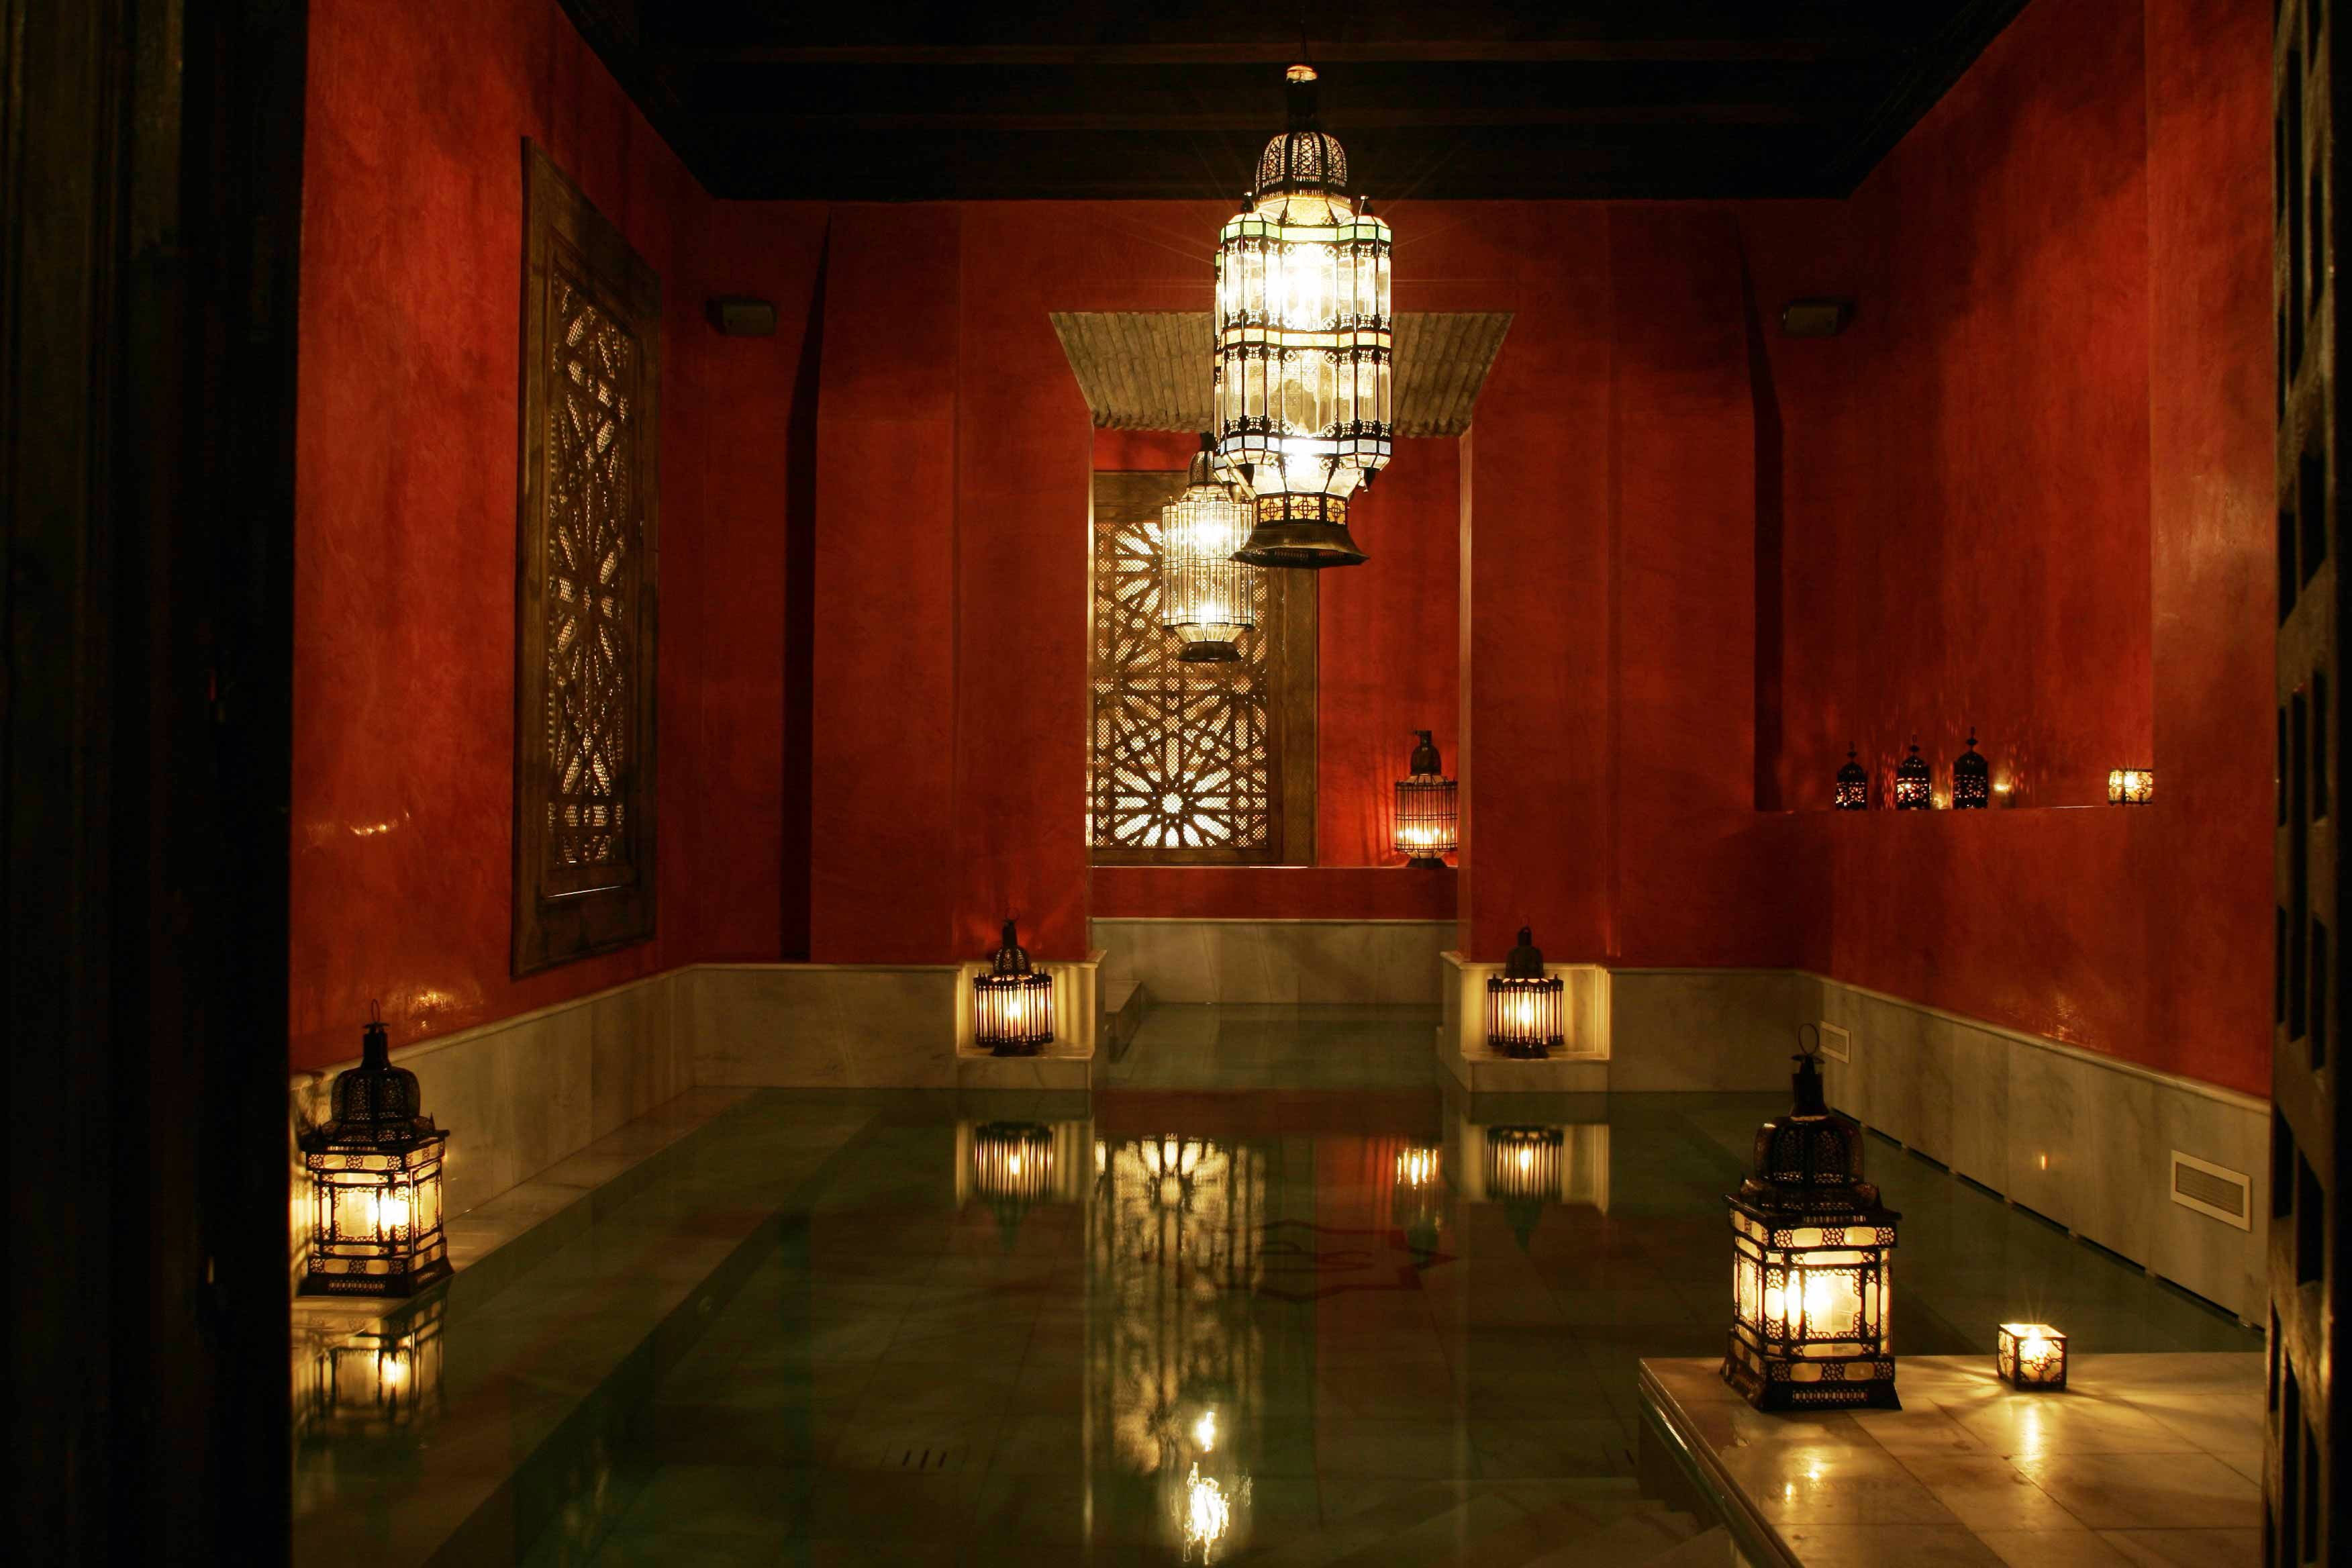 Arab Baths Aire de Sevilla in Spain My Favorite Things